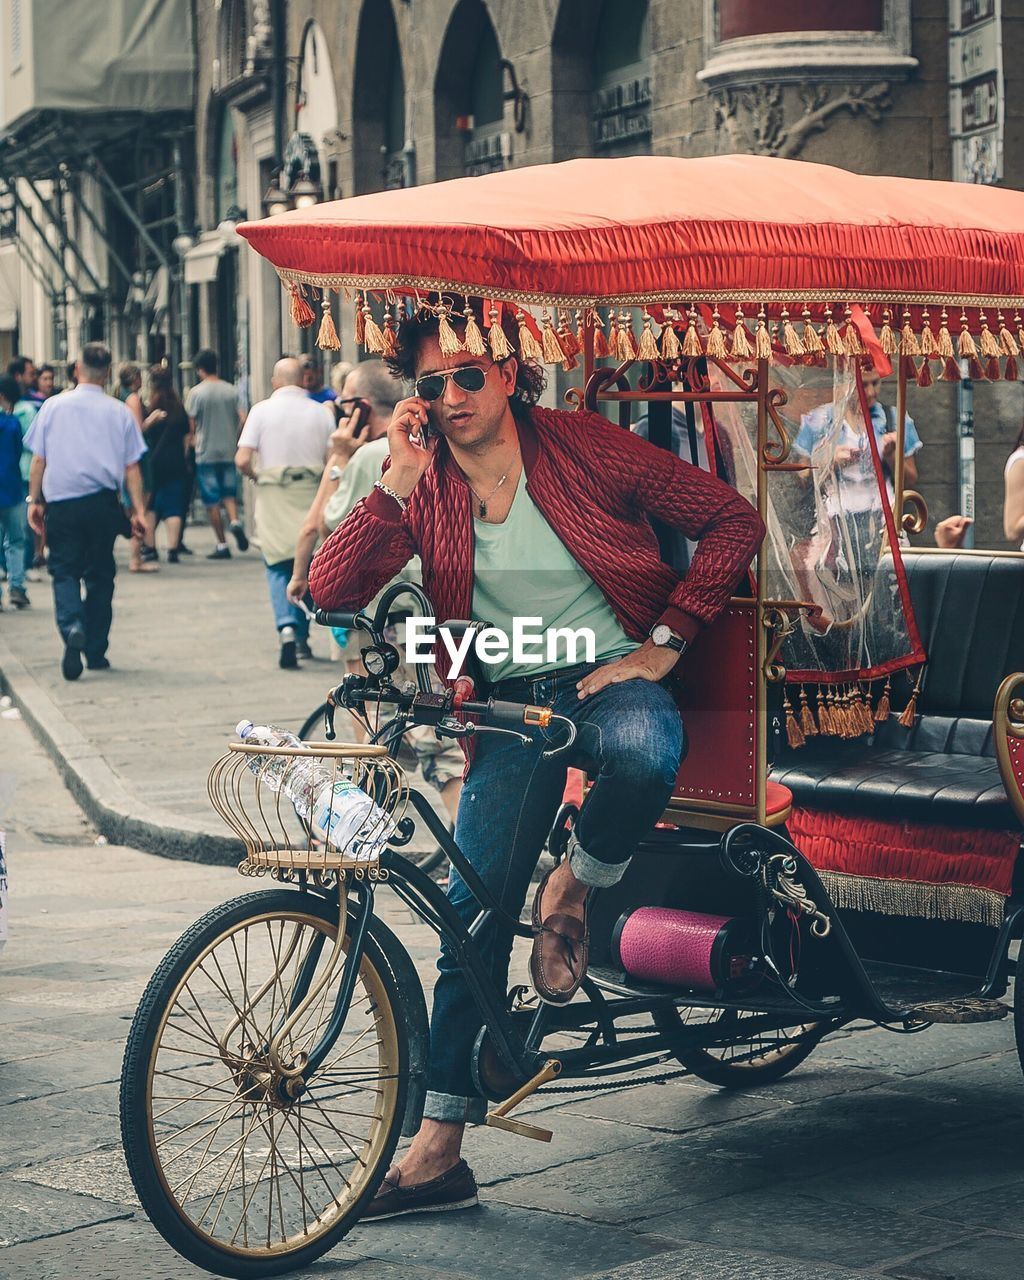 bicycle, real people, transportation, street, outdoors, mode of transport, travel, day, city life, city, market, full length, men, women, large group of people, building exterior, architecture, young adult, adult, people